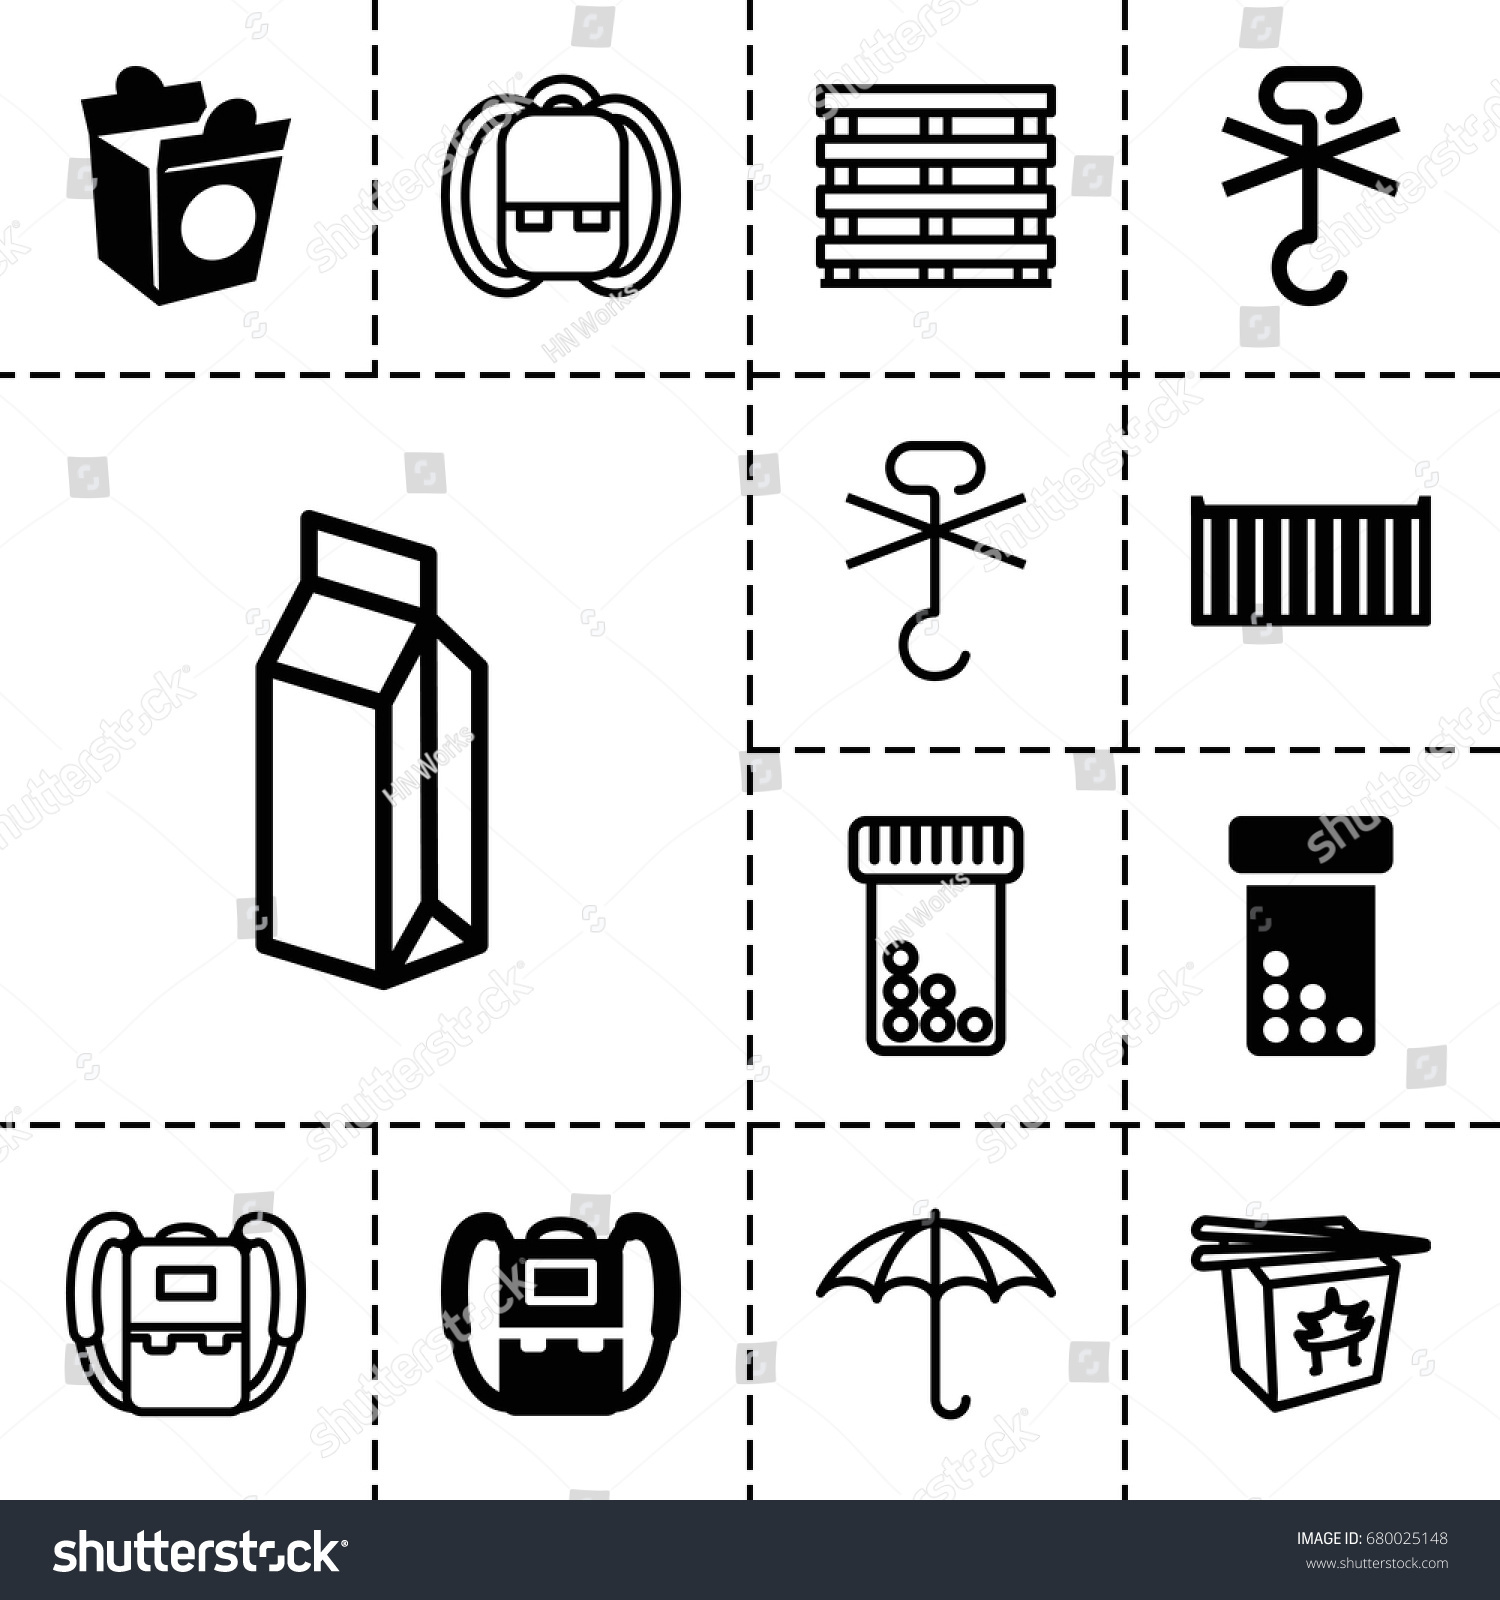 white box no outline. pack icon set of 13 filled and outline icons such as backpack take white box no